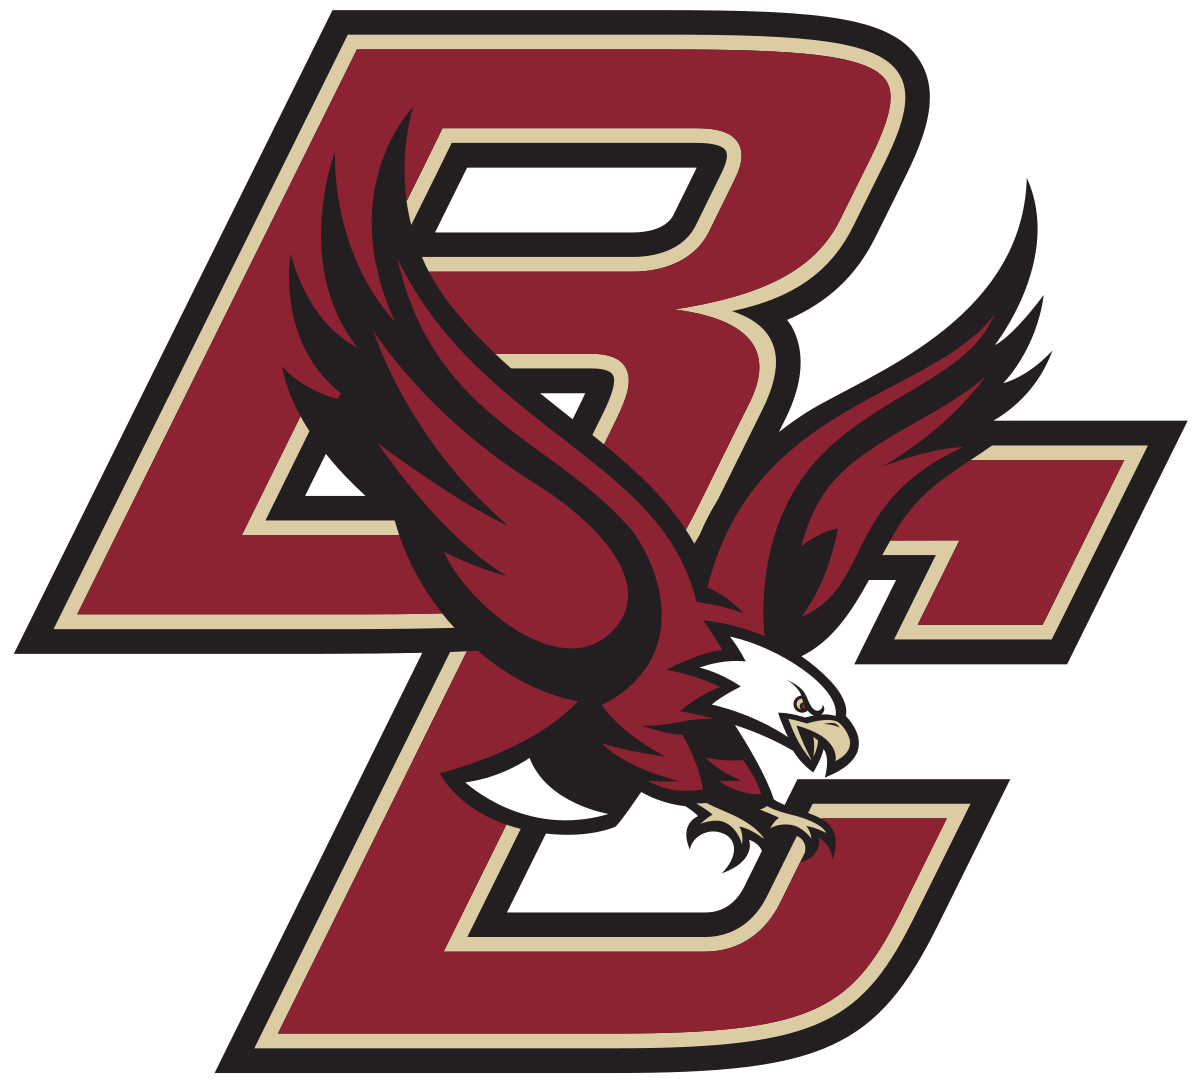 Boston college eagles wikipedia. Eagle school mascot clipart